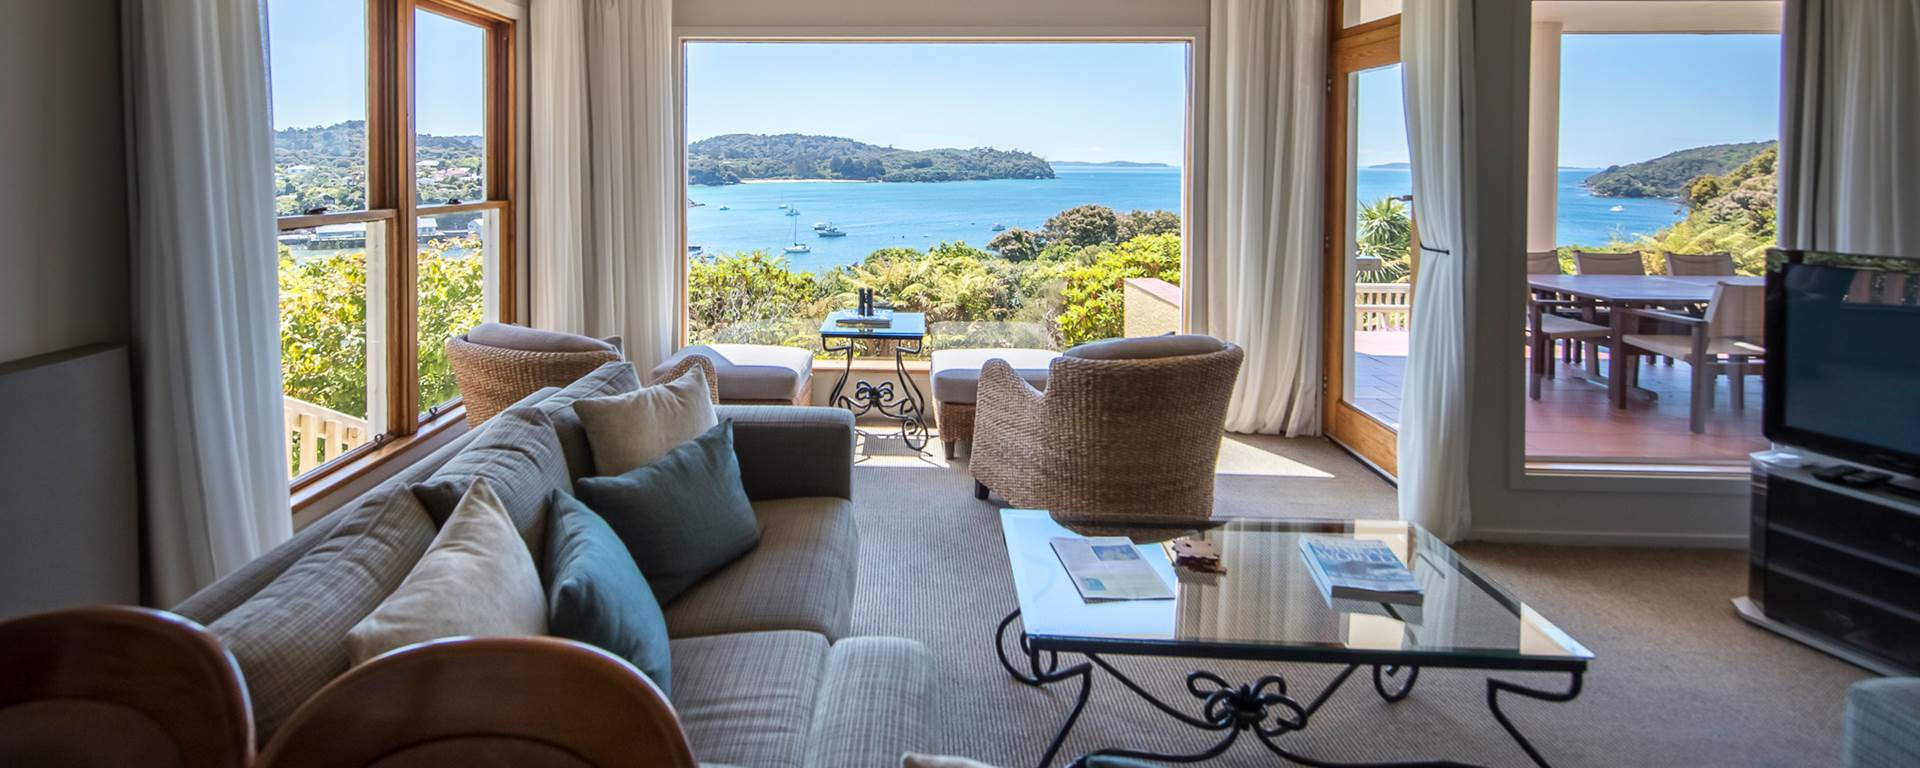 Stewart Island Lodge - lounge